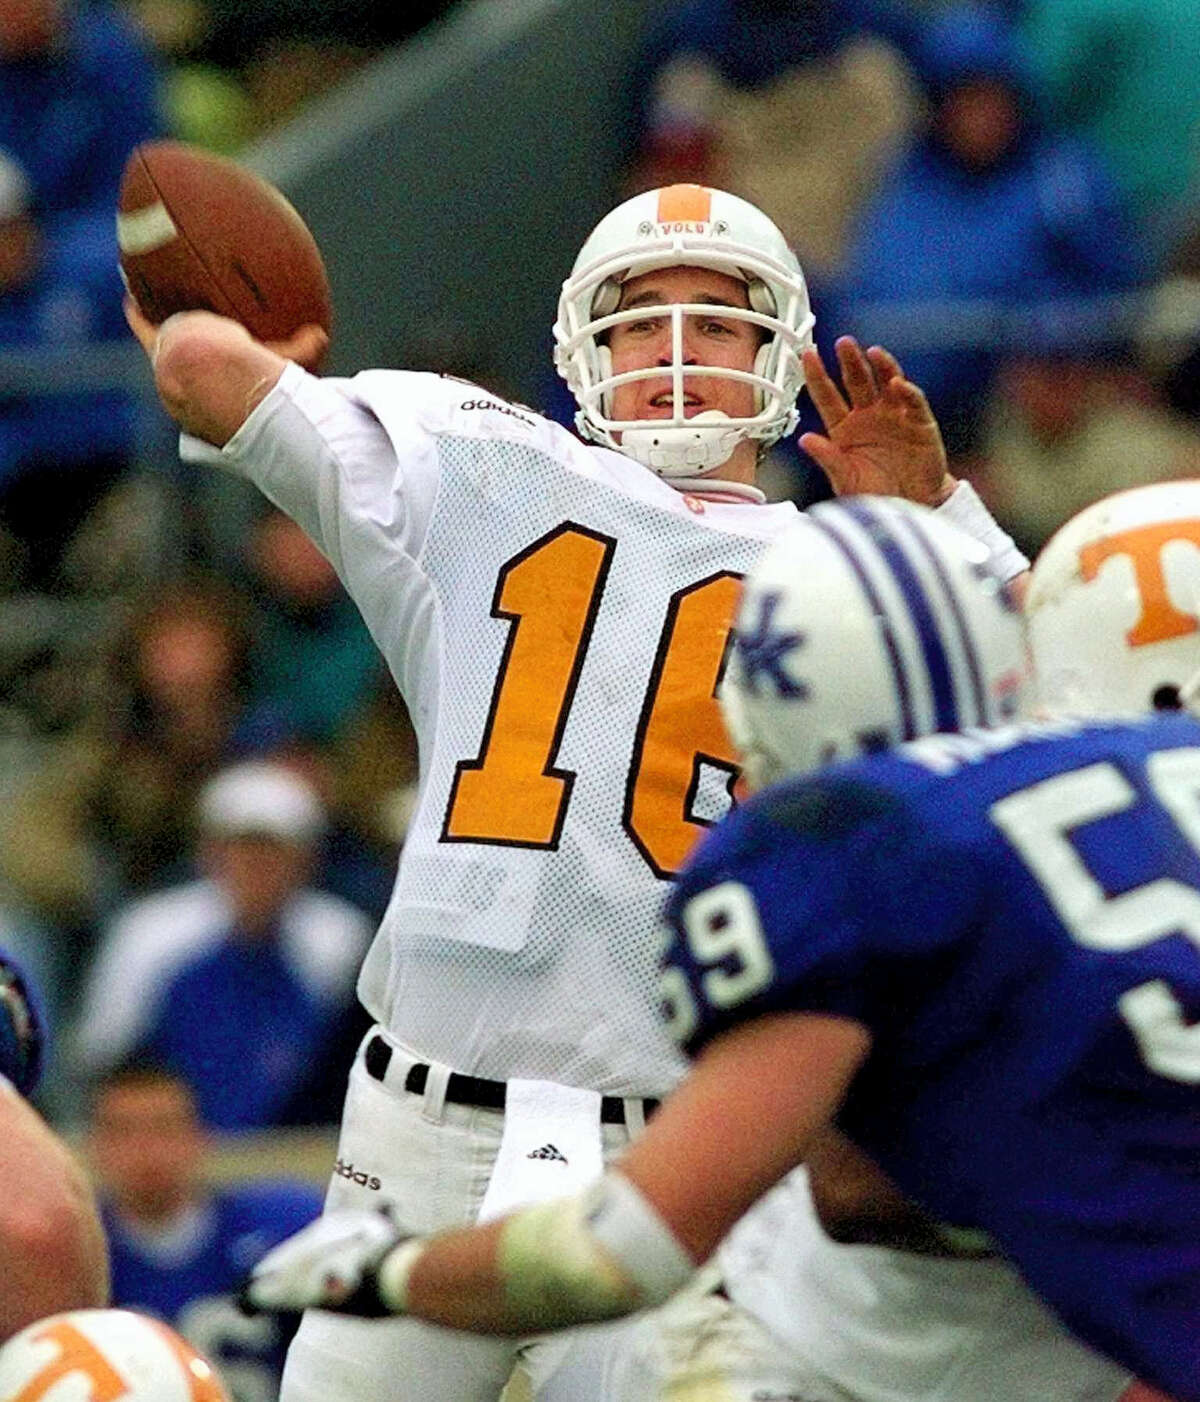 Tennessee quarterback Peyton Manning launches a pass. Manning and his Southeastern Conference nemesis, former Florida coach Steve Spurrier, will go into the College Football Hall of Fame together.